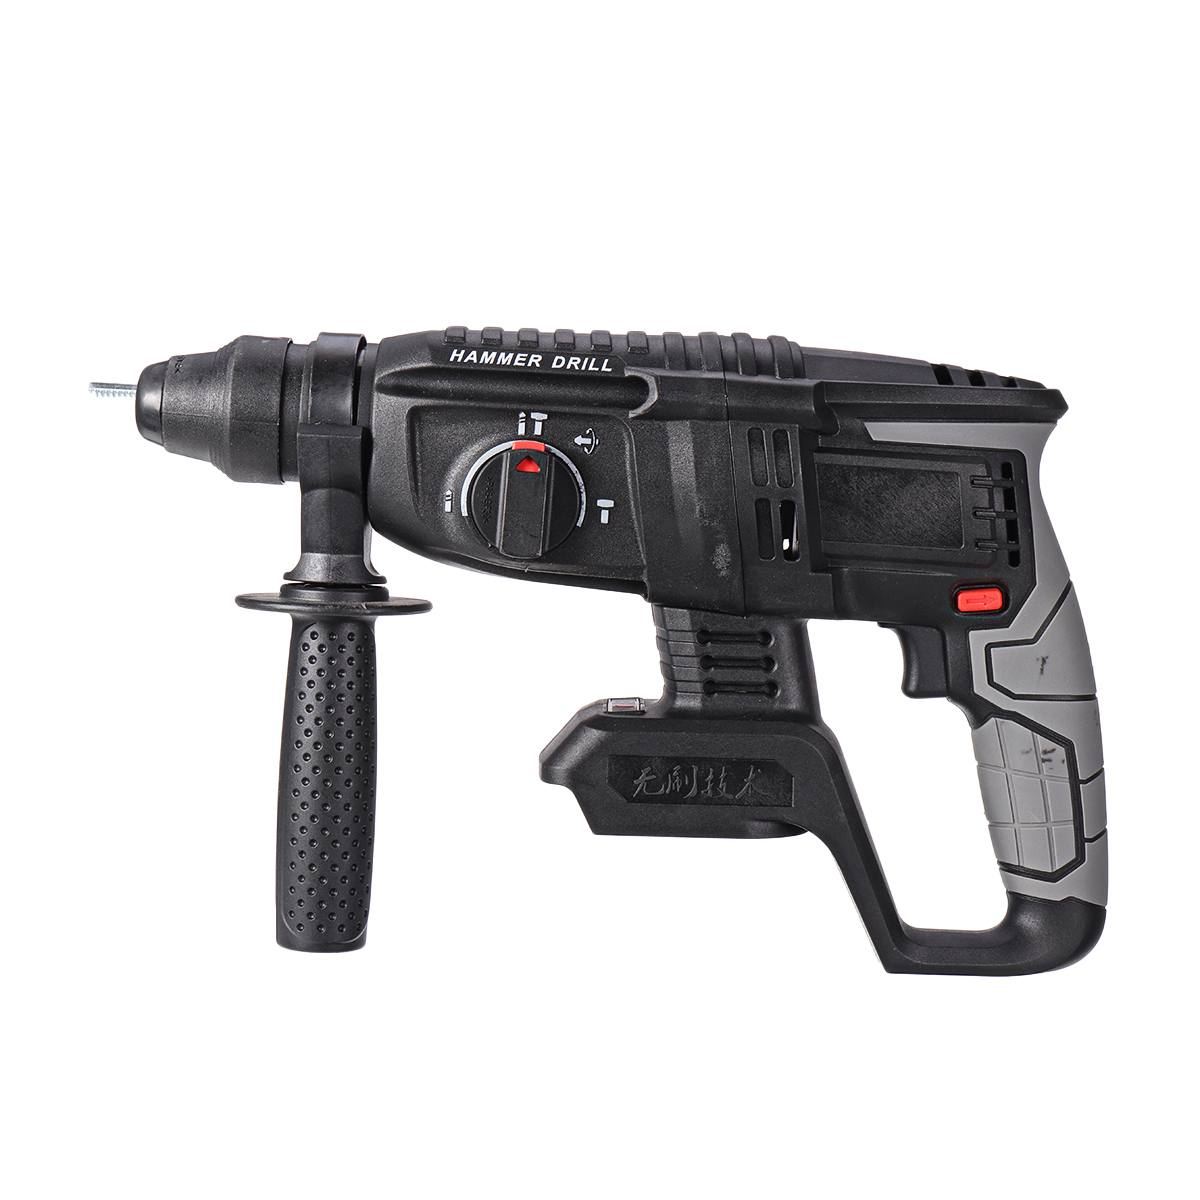 Multifunction Battery Power Brushless Makita For Rotary Electric Hammer Rechargeable Hammer Impact Tool Drill 198Vf